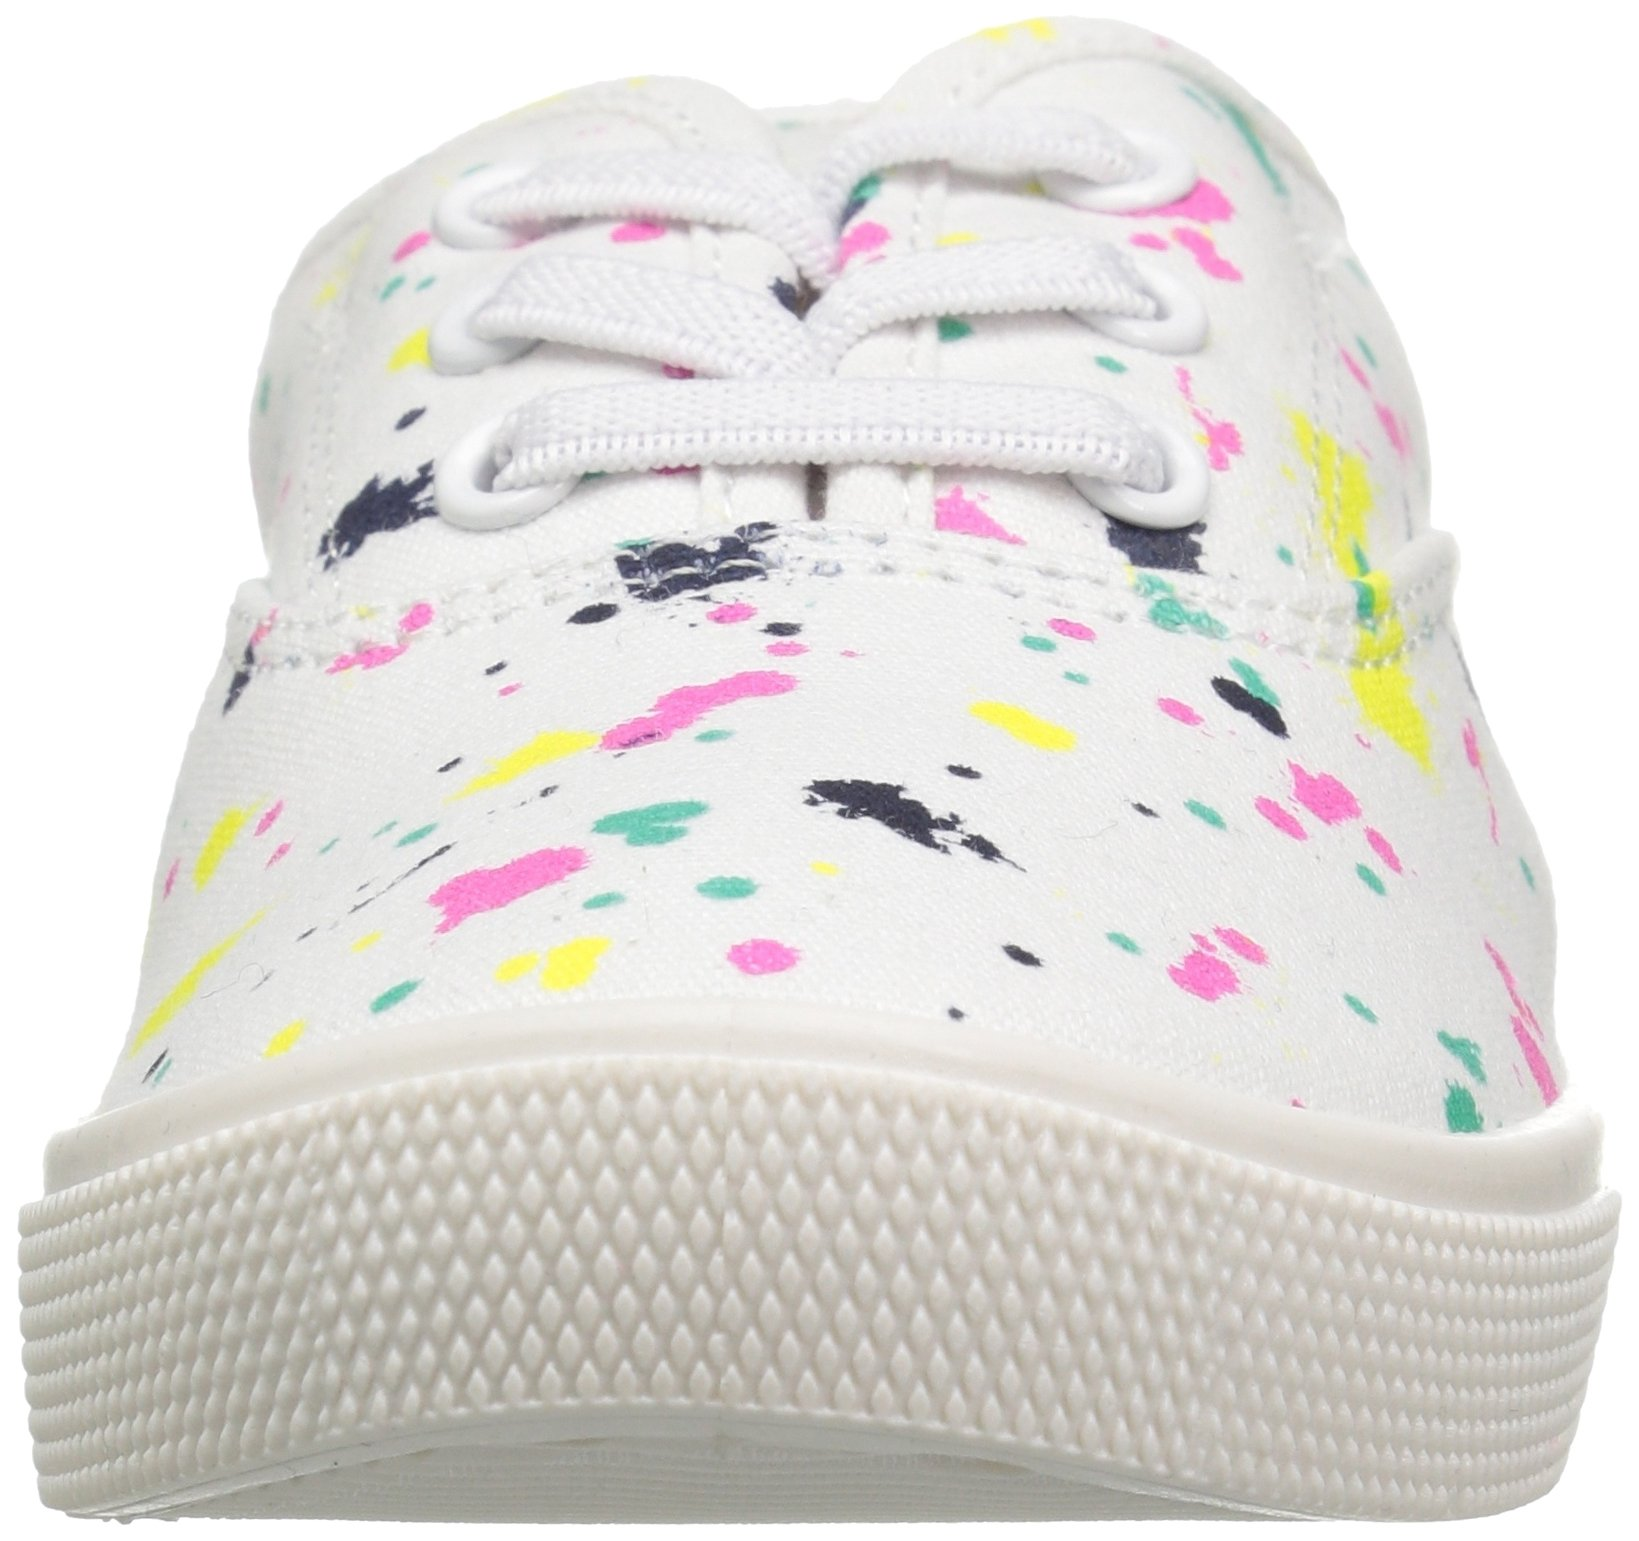 Carter's Piper Girl's Casual Sneaker, White/Print, 3 M US Little Kid by Carter's (Image #4)